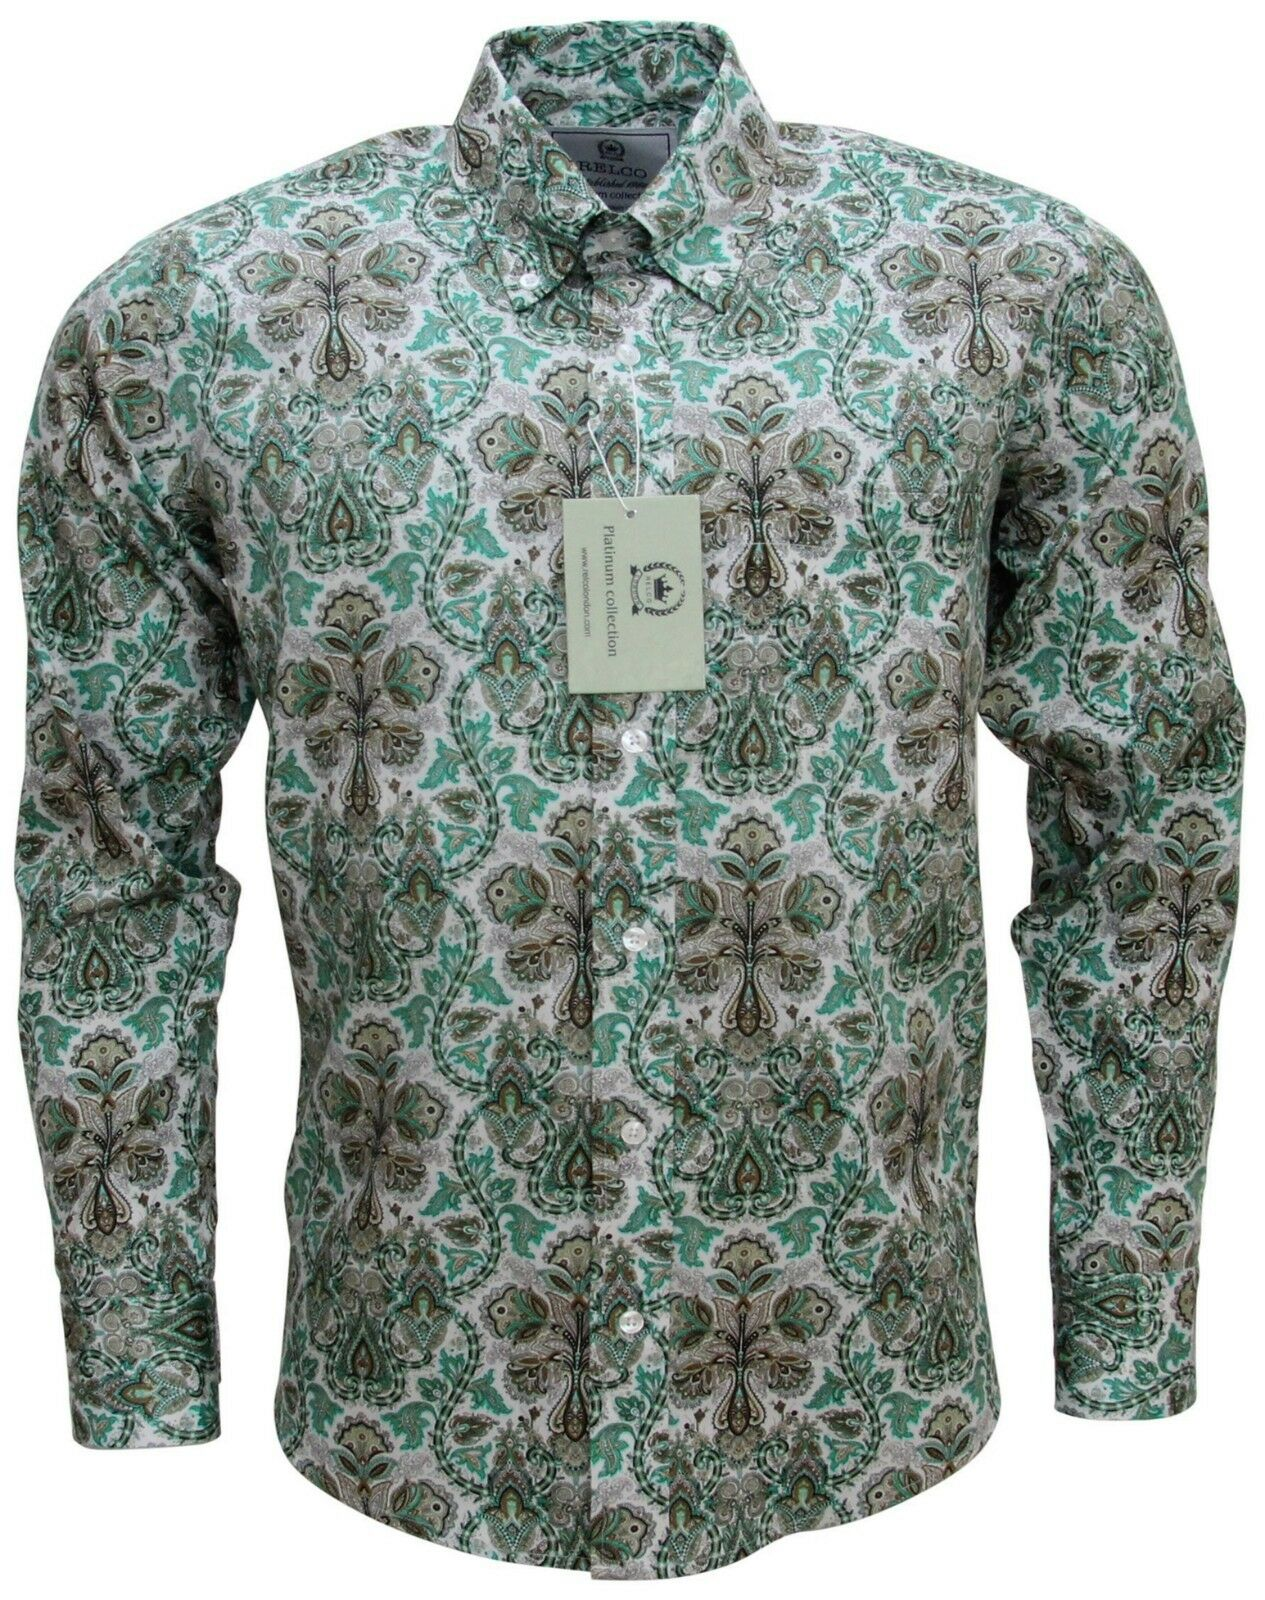 9ecf4f34 Relco Men's Green Paisley Long Sleeved Button Down Collar Premium 60's Mod  Shirt